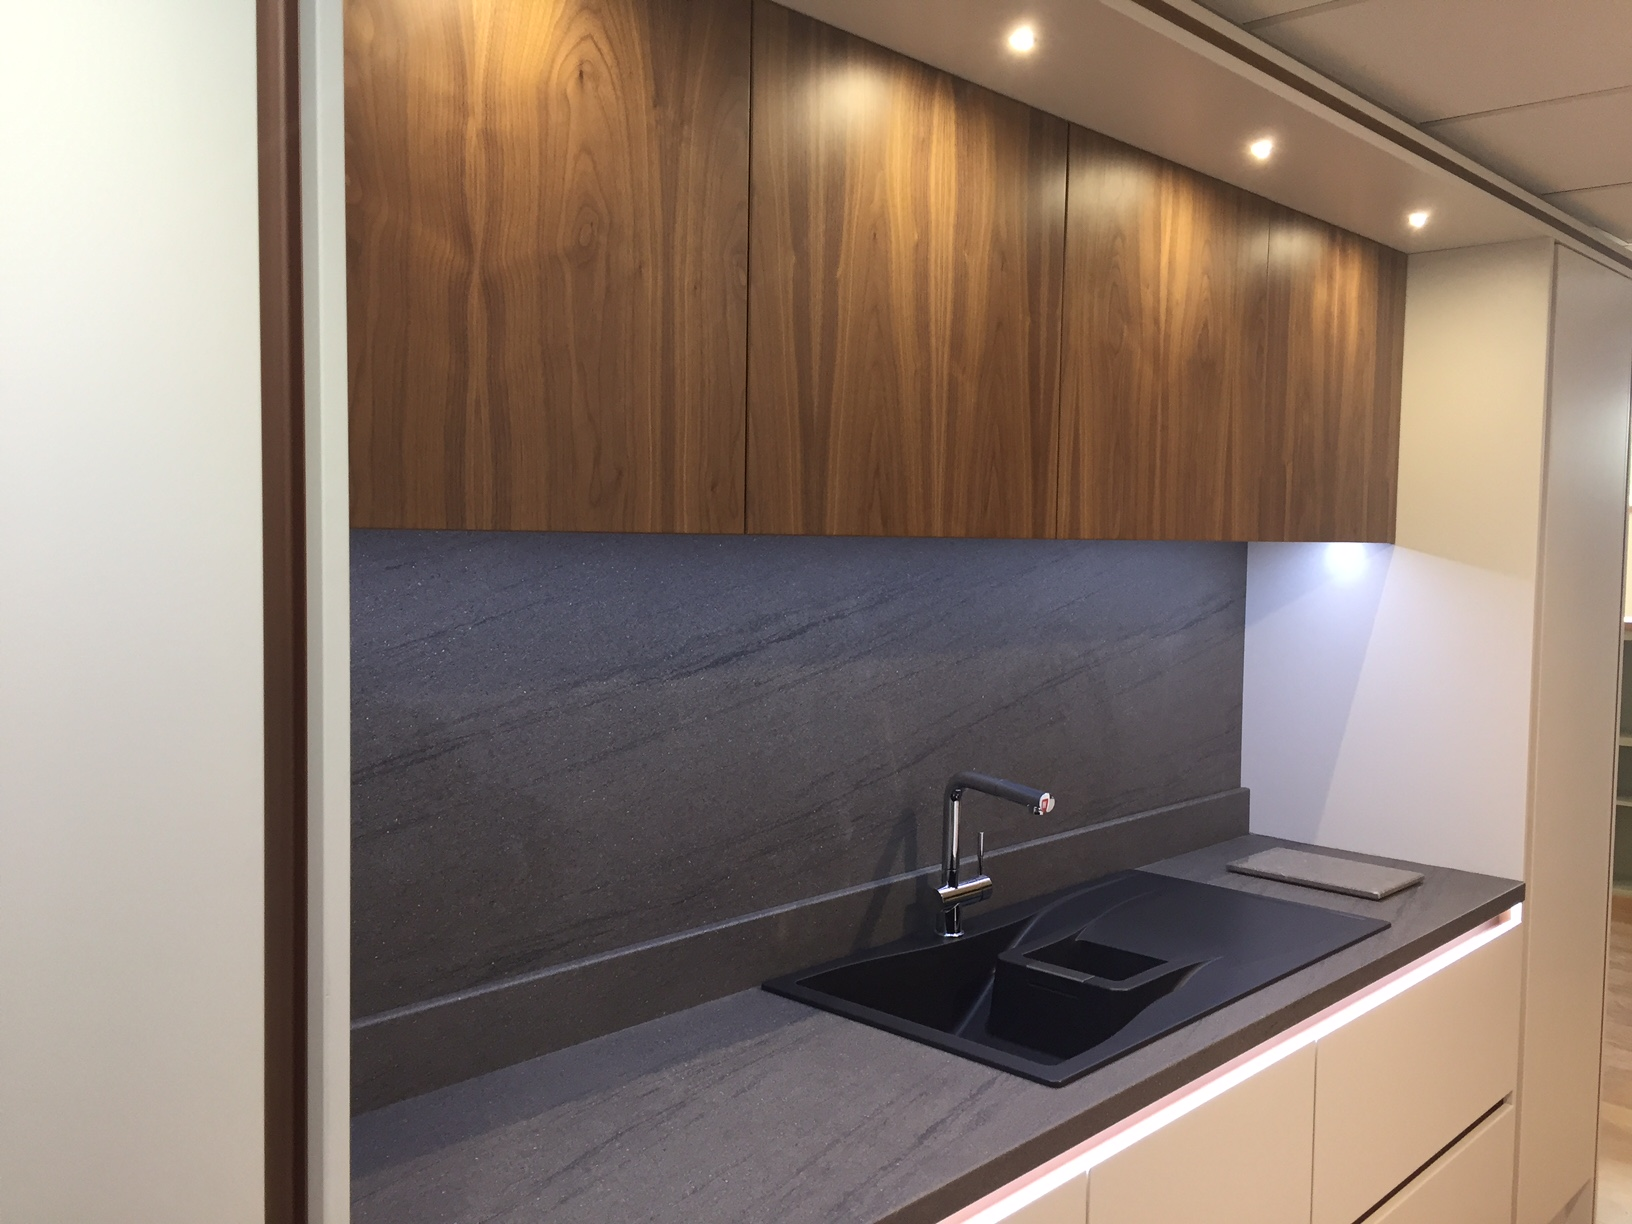 Showroom Focus New 'Stanton' Fitted Kitchen